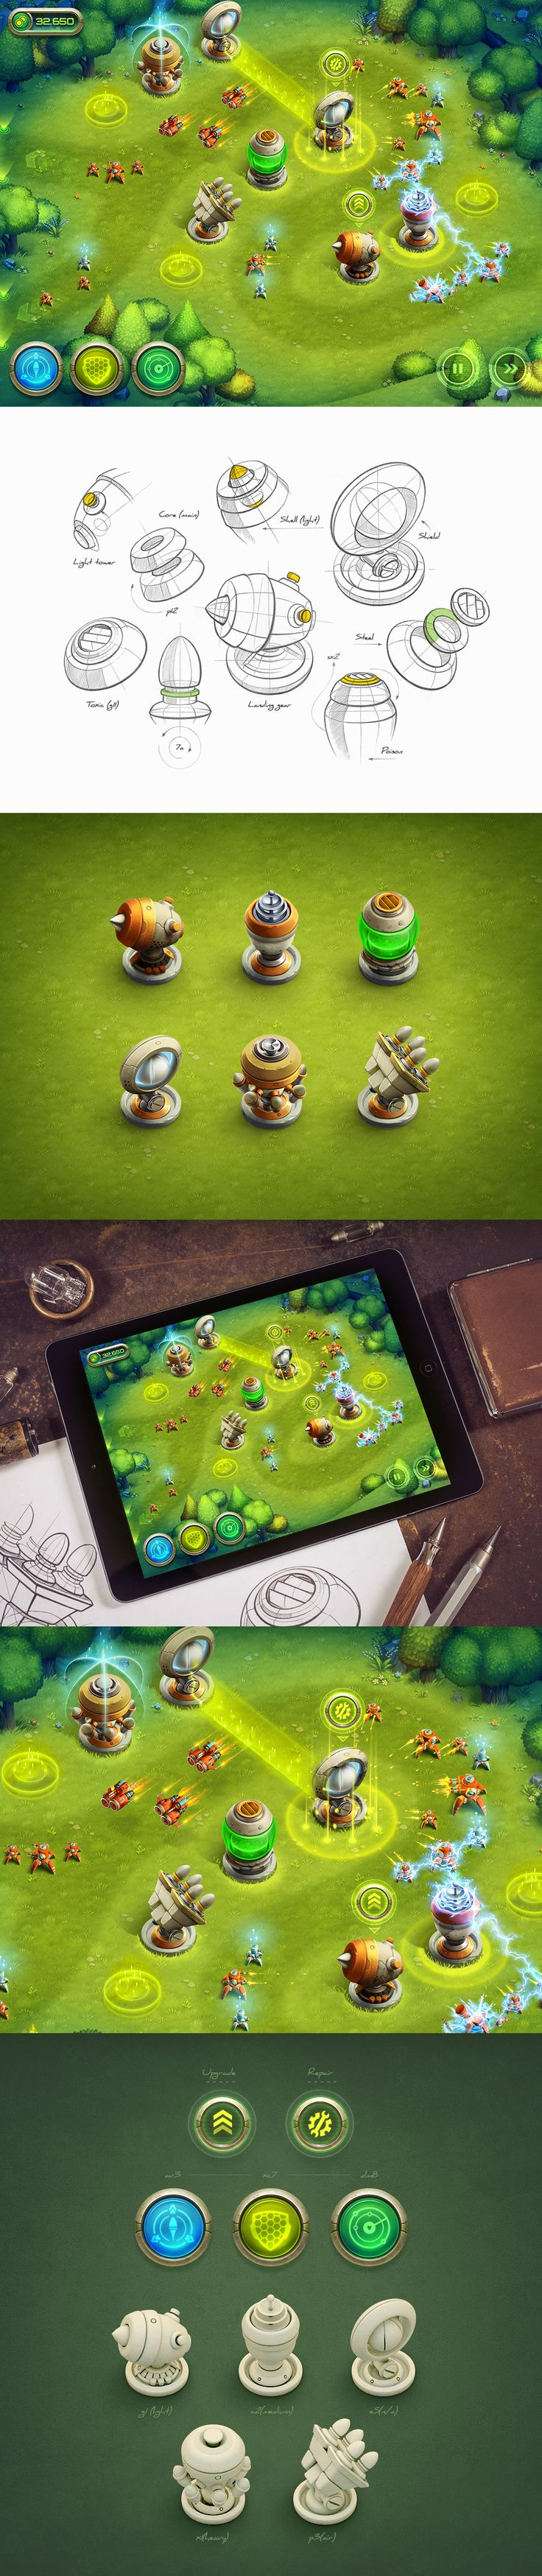 iOS Games   Isometry collection on Behance